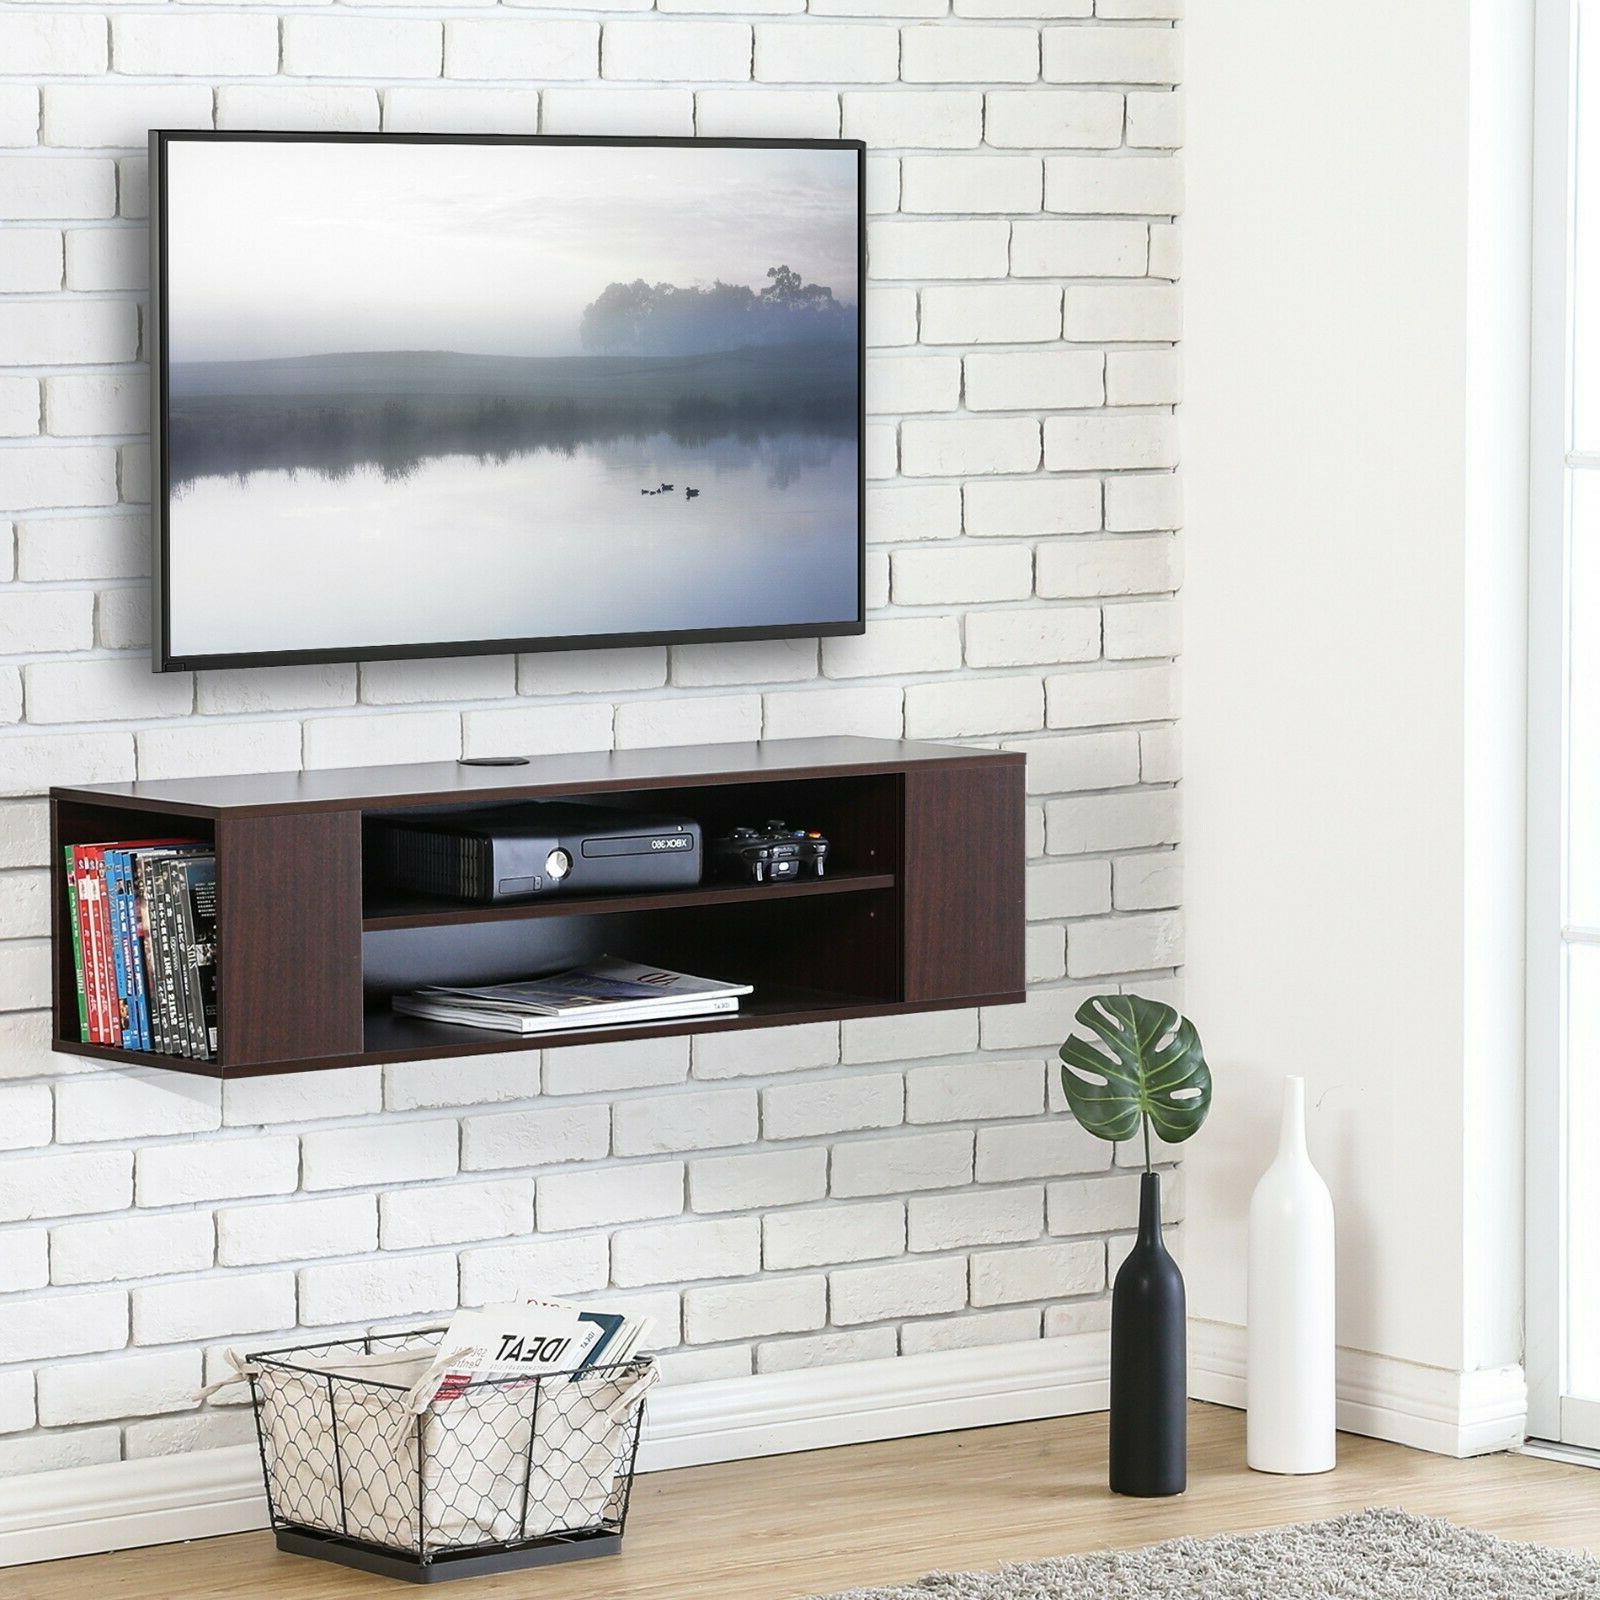 FITUEYES Wall Console,Floating Stand Shelf,Black